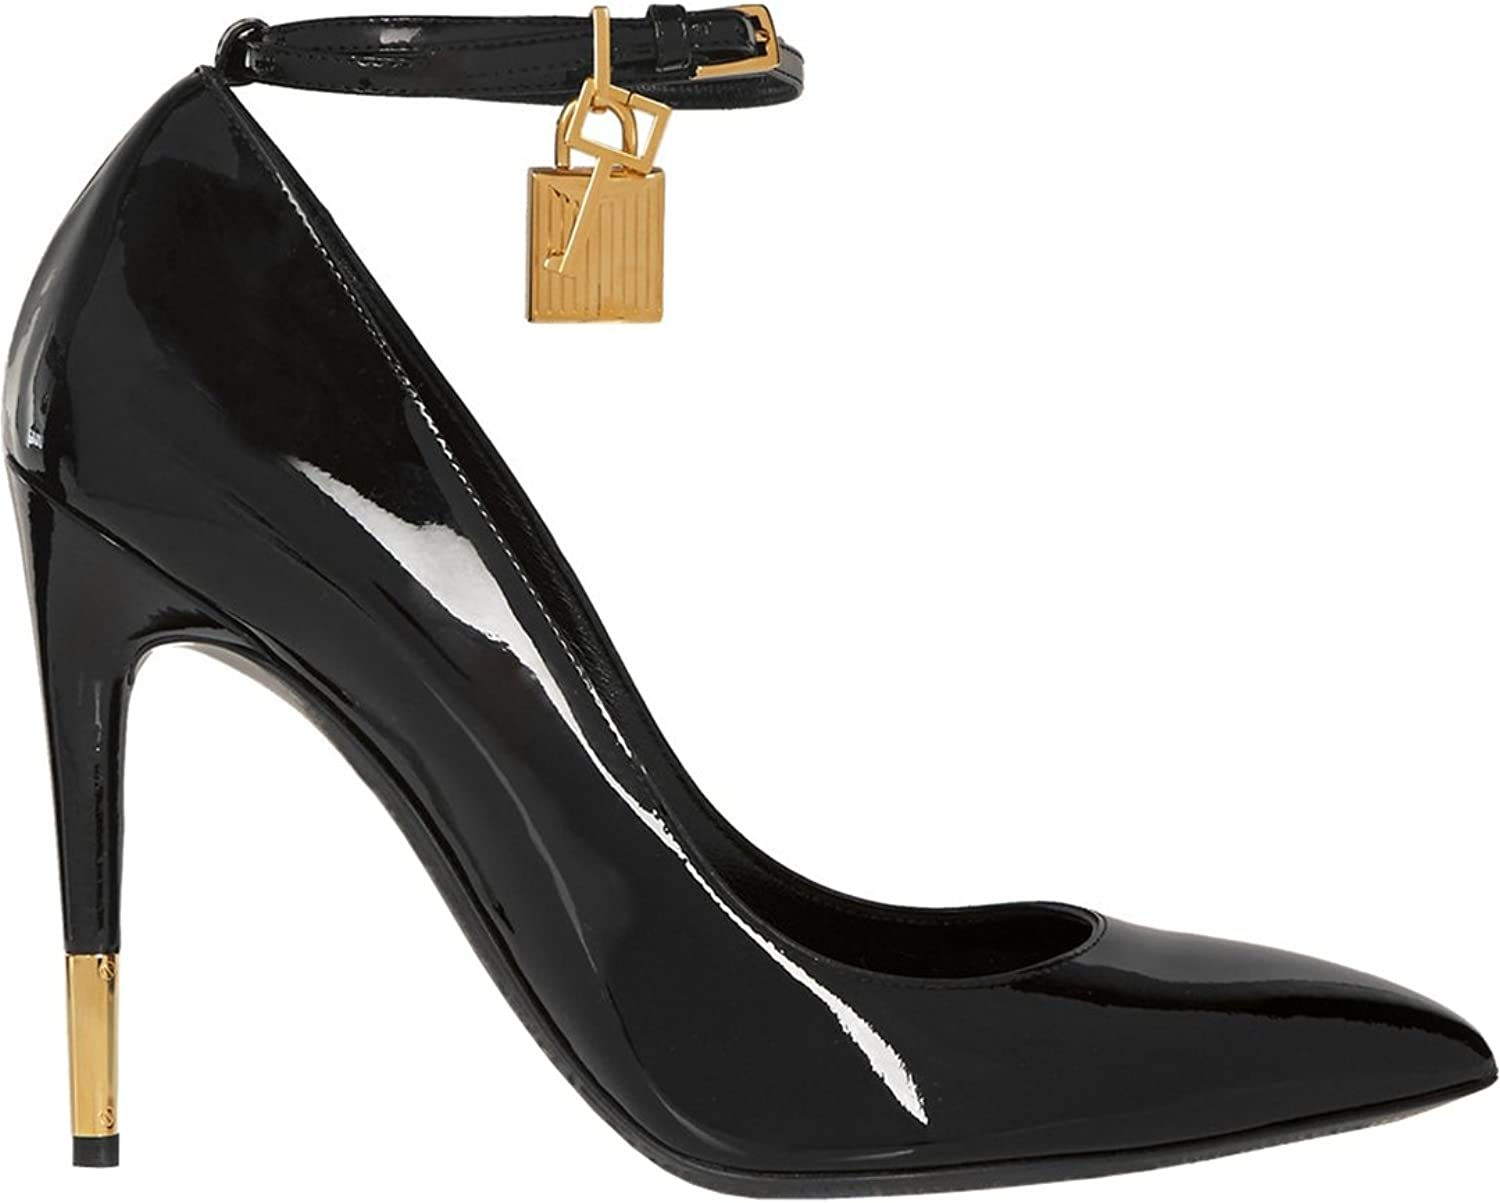 TDA Women's Pointed Toe Single-Strap Patent Leather Evening Party Dress Stiletto Pumps